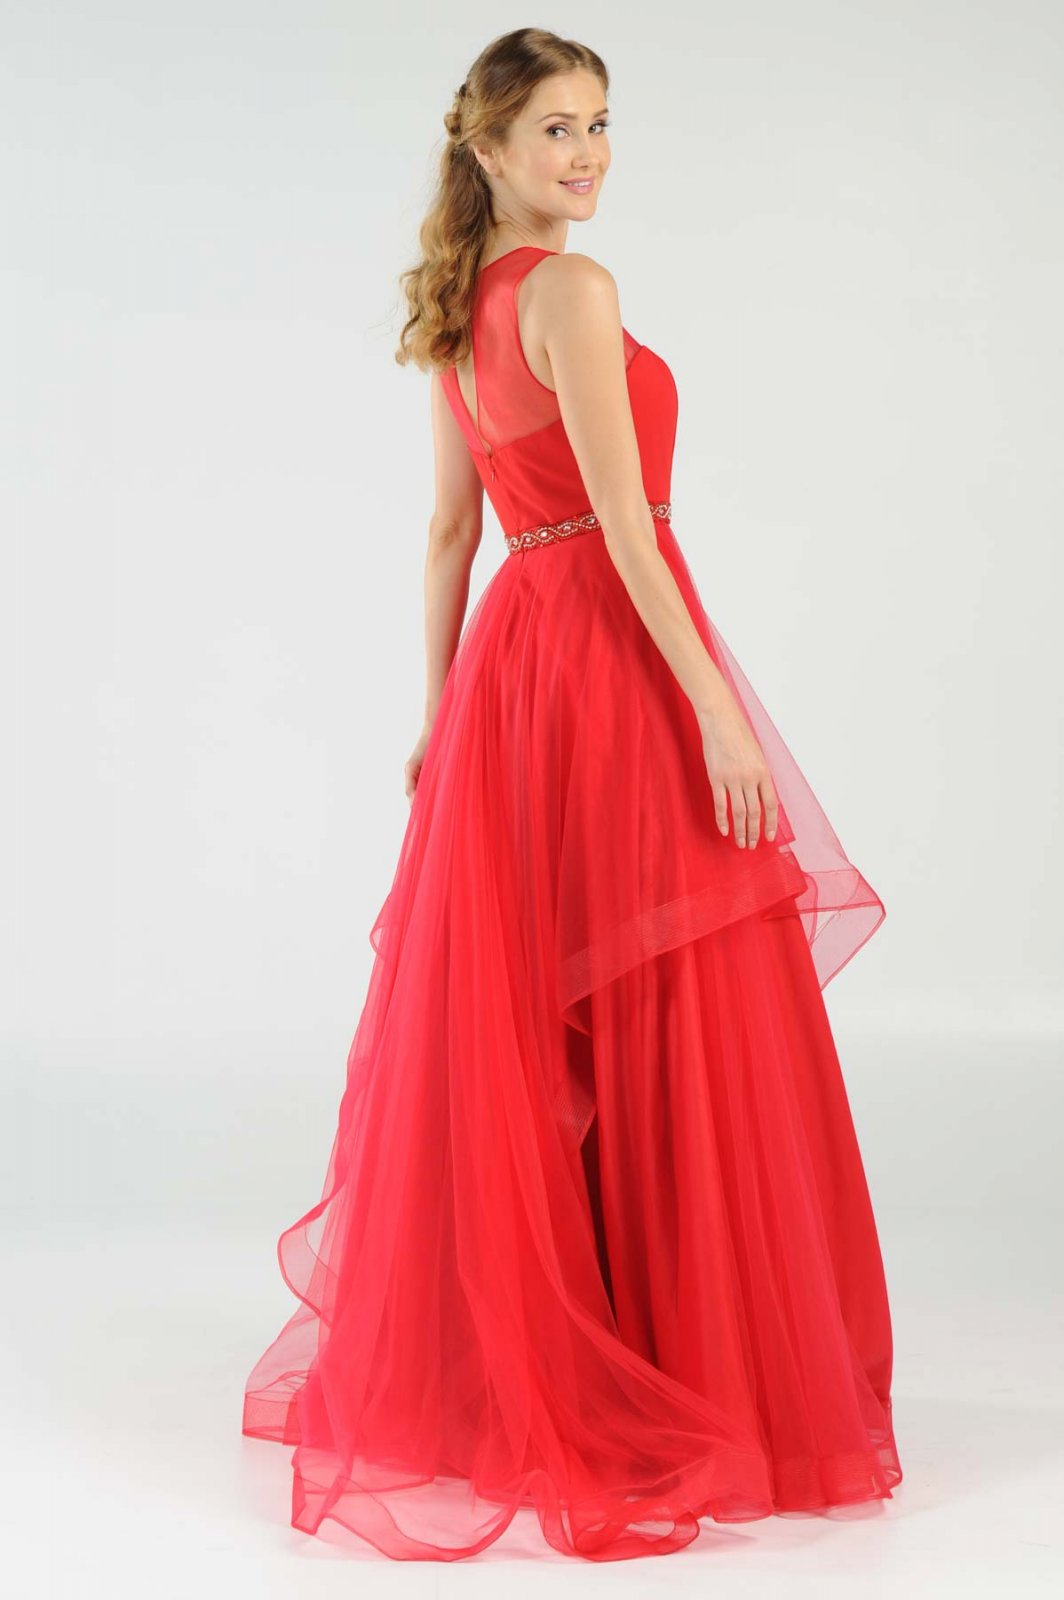 Red Organza Long Prom Dress With Illusion Neckline